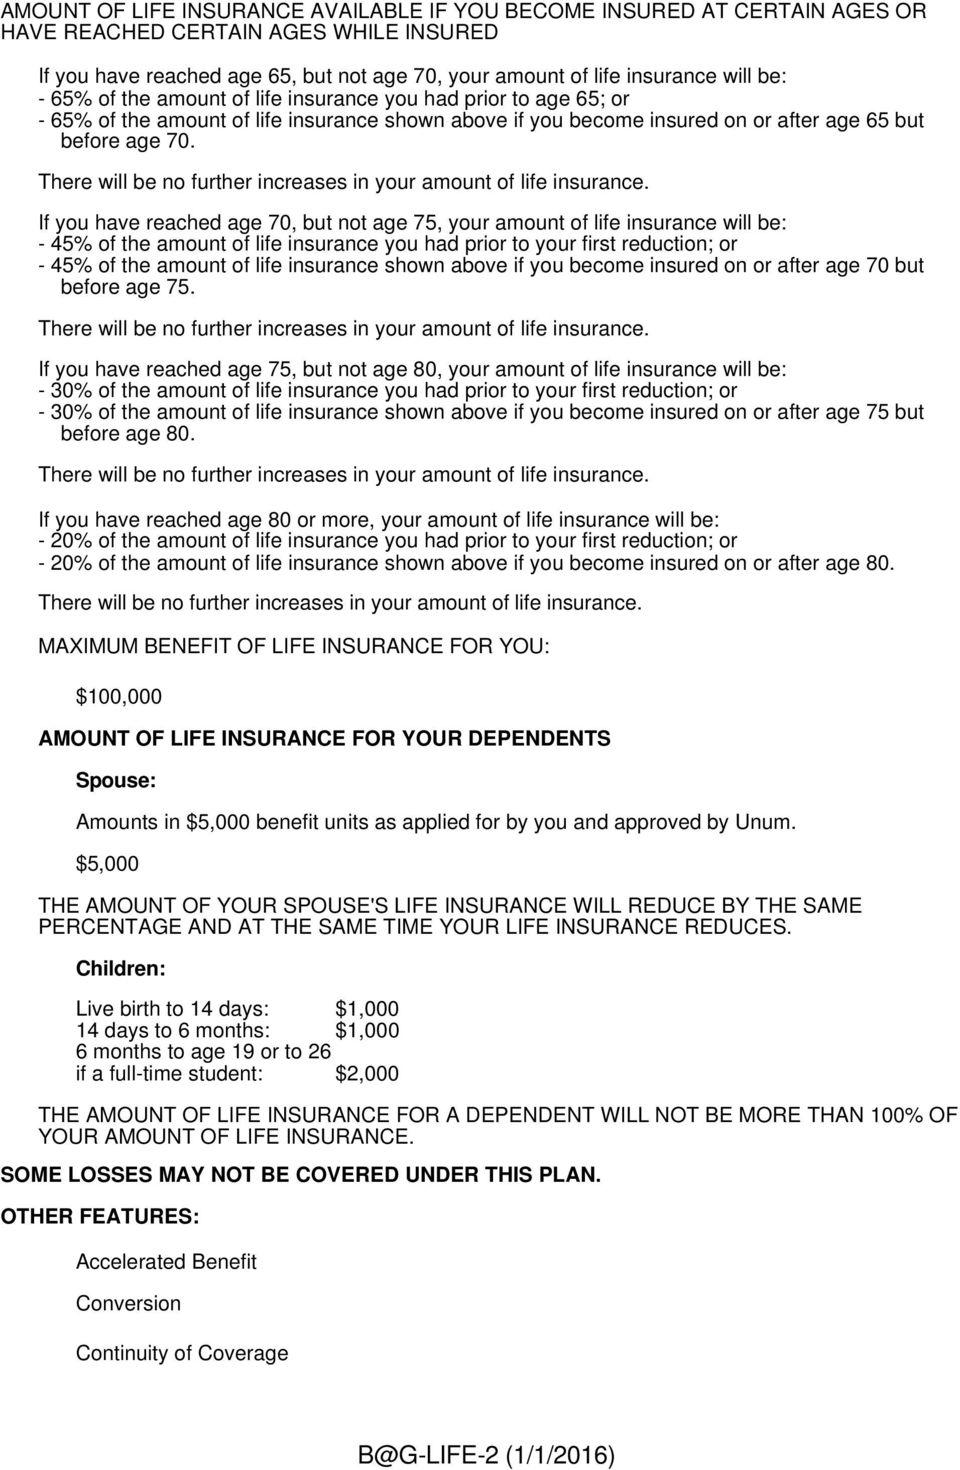 There will be no further increases in your amount of life insurance.